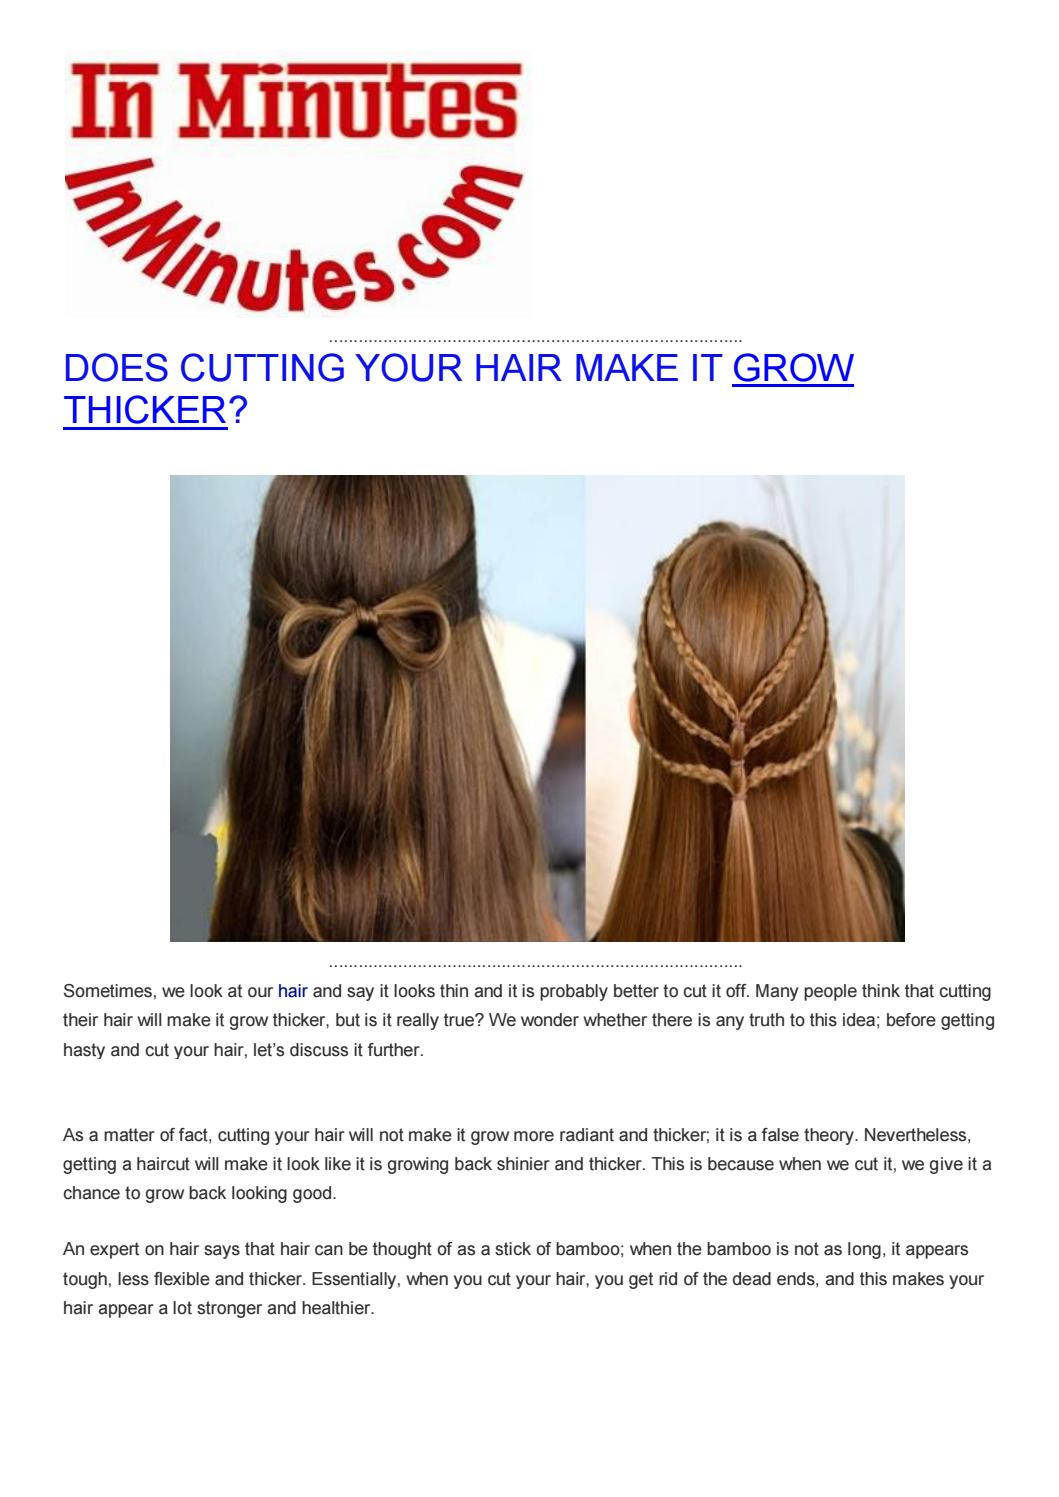 Does cutting your hair make it grow thicker by health news, weight